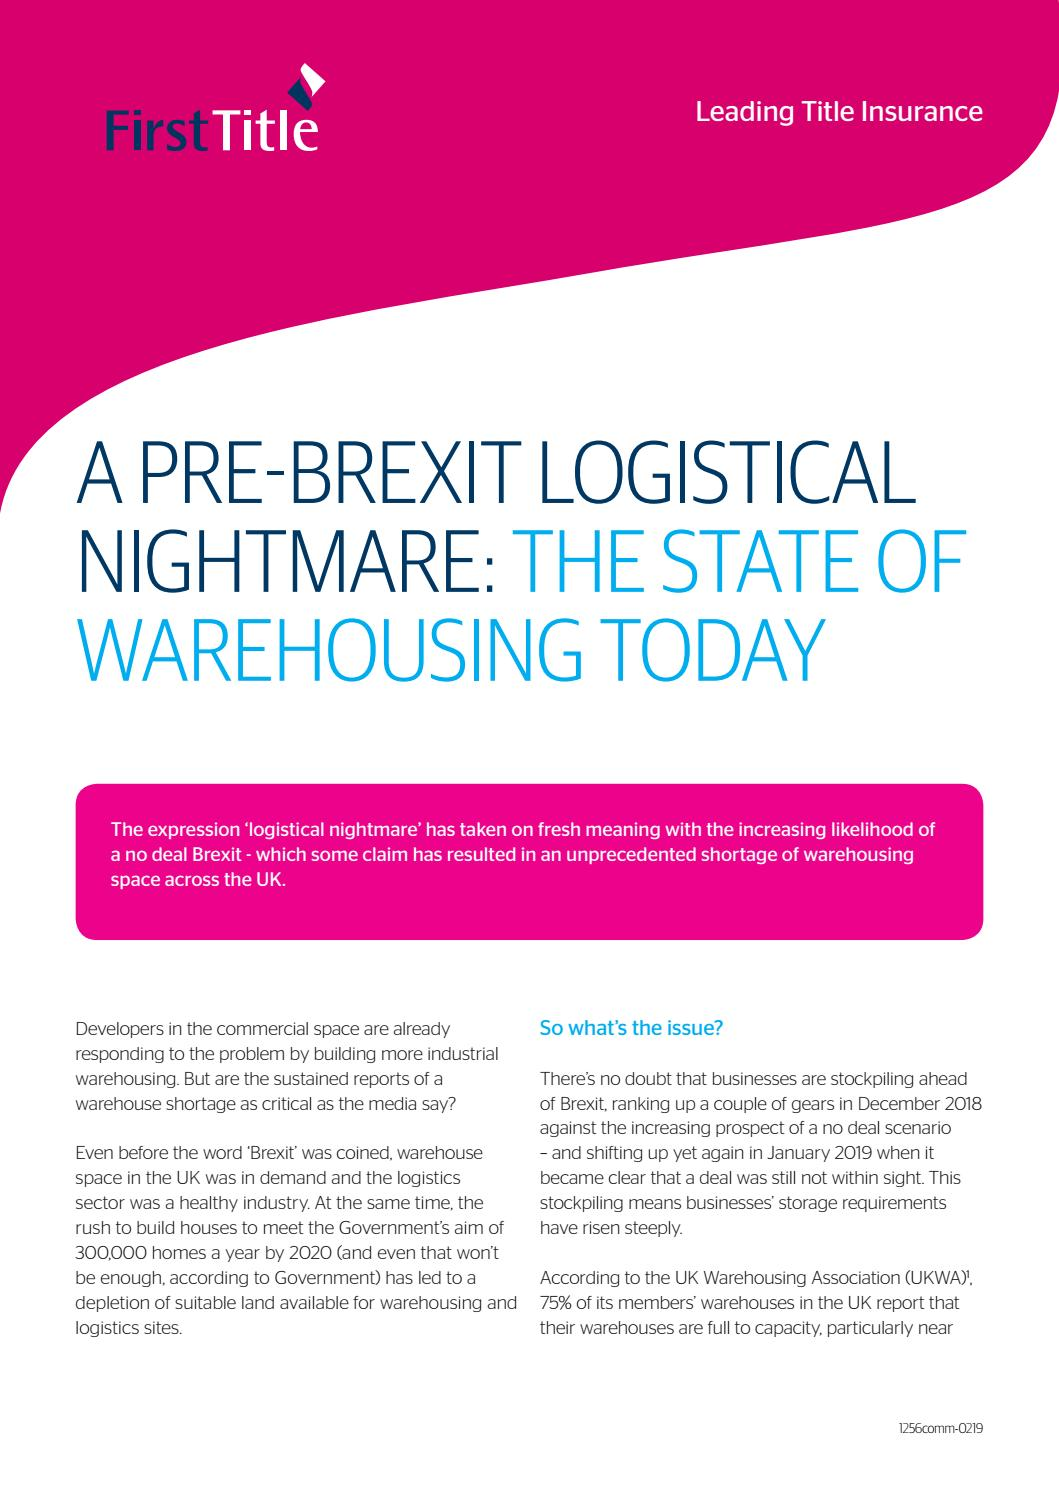 A pre-Brexit Logistical Nightmare: The State of Warehousing Today by